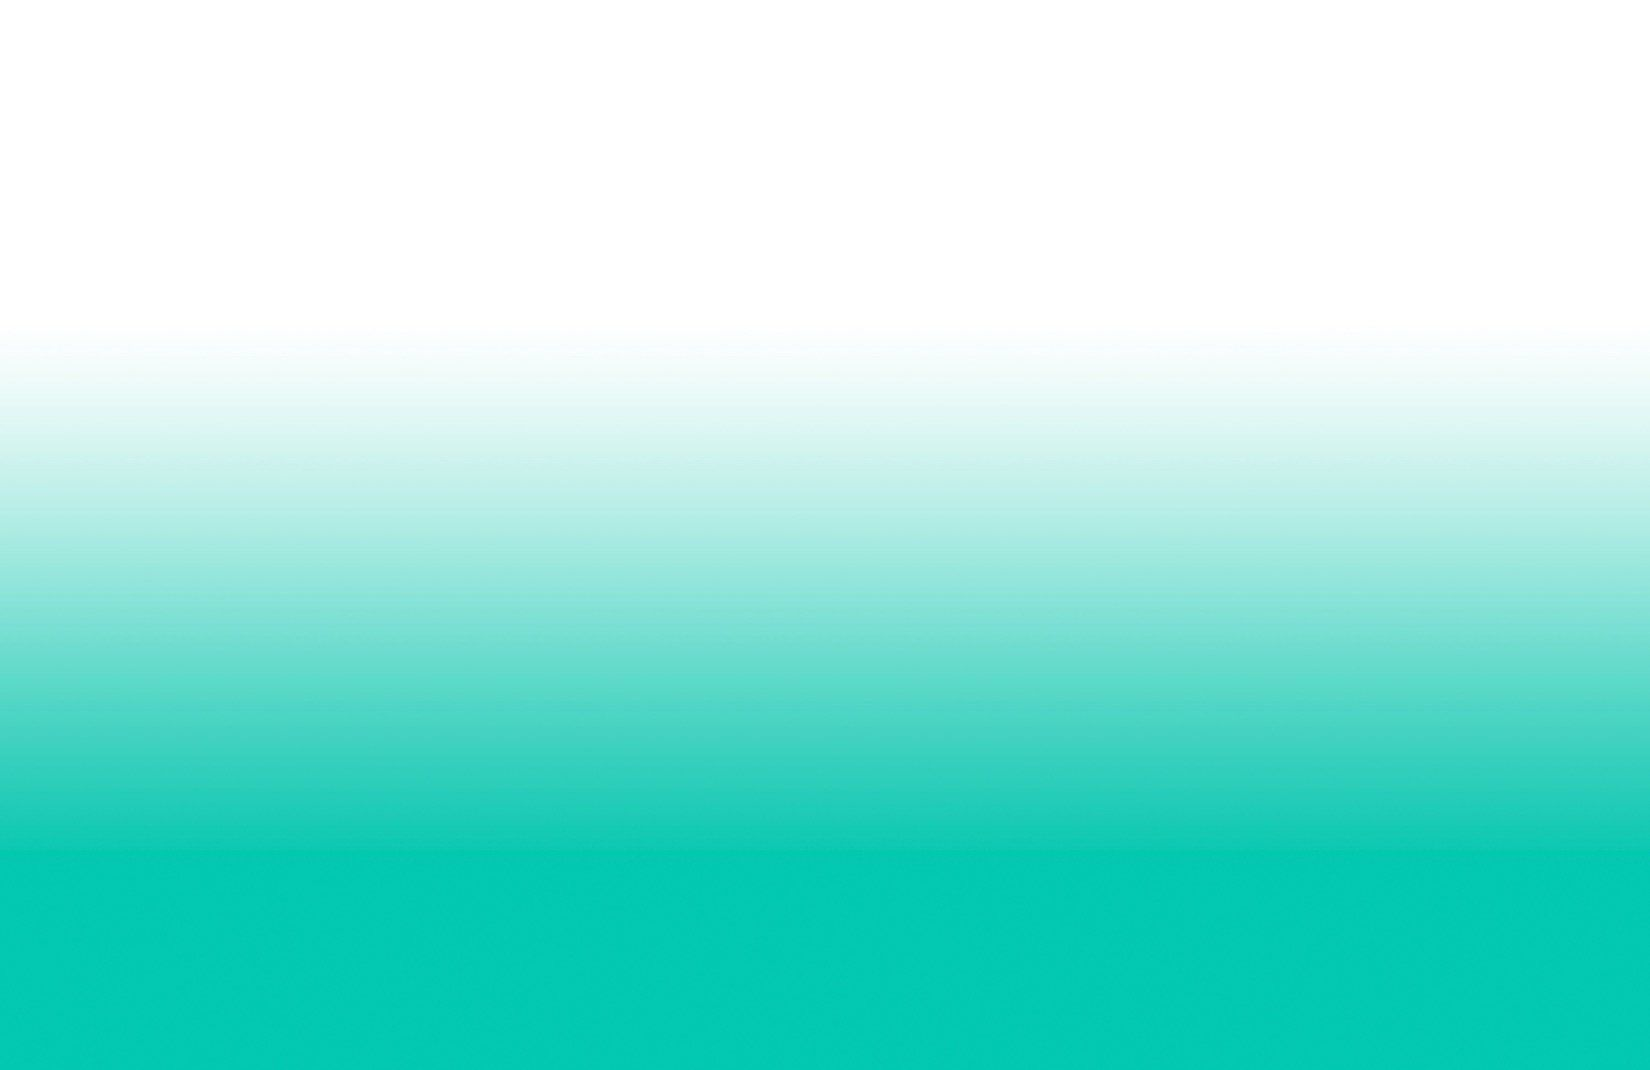 Bright Turquoise Wallpaper Mural Muralswallpaper Peach Wallpaper Ombre Wallpapers Ombre Background